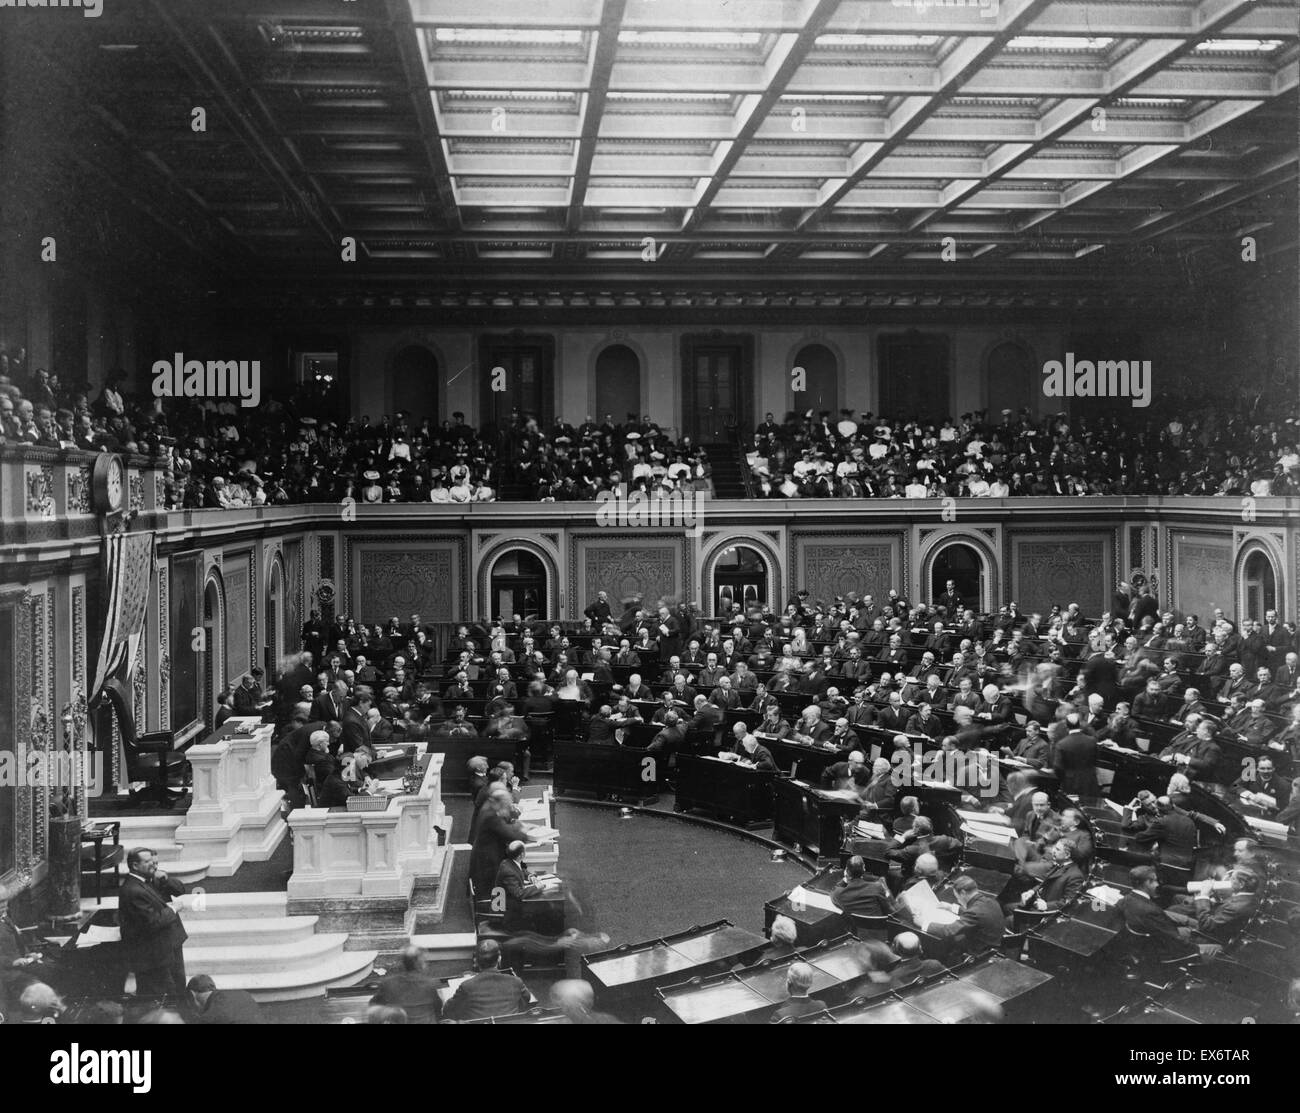 Photographic print of the opening ceremonies of the U.S. 59th Congress. Photographed by Frances Benjamin Johnston - Stock Image